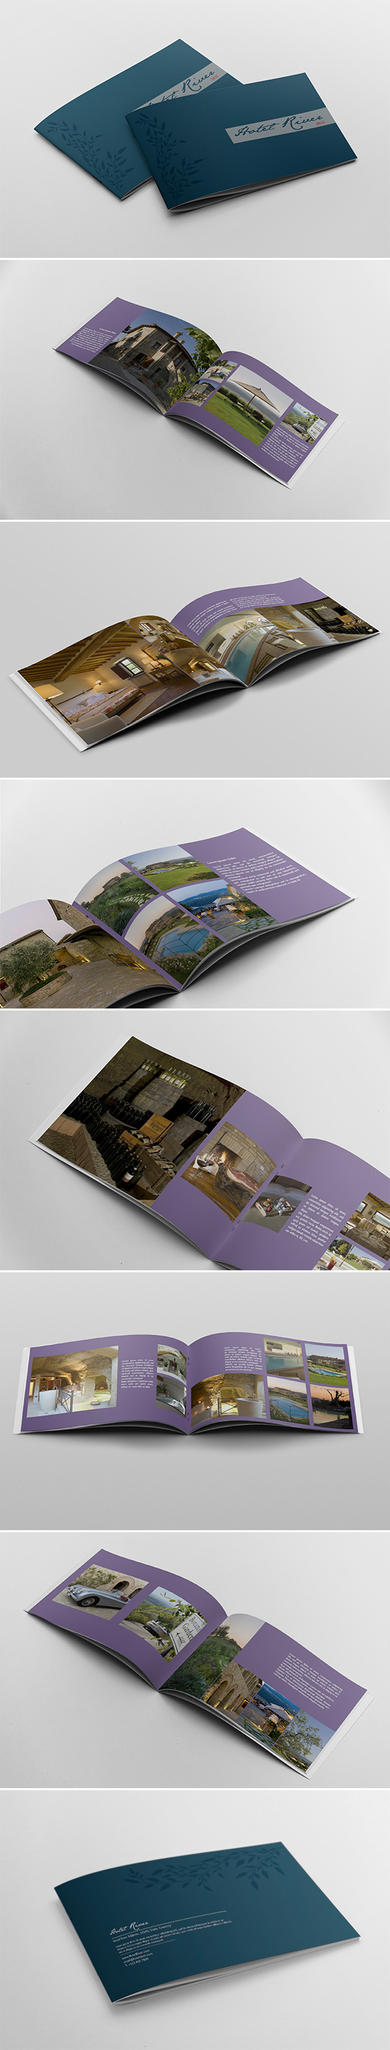 Booklet / Brochure Template by andre2886